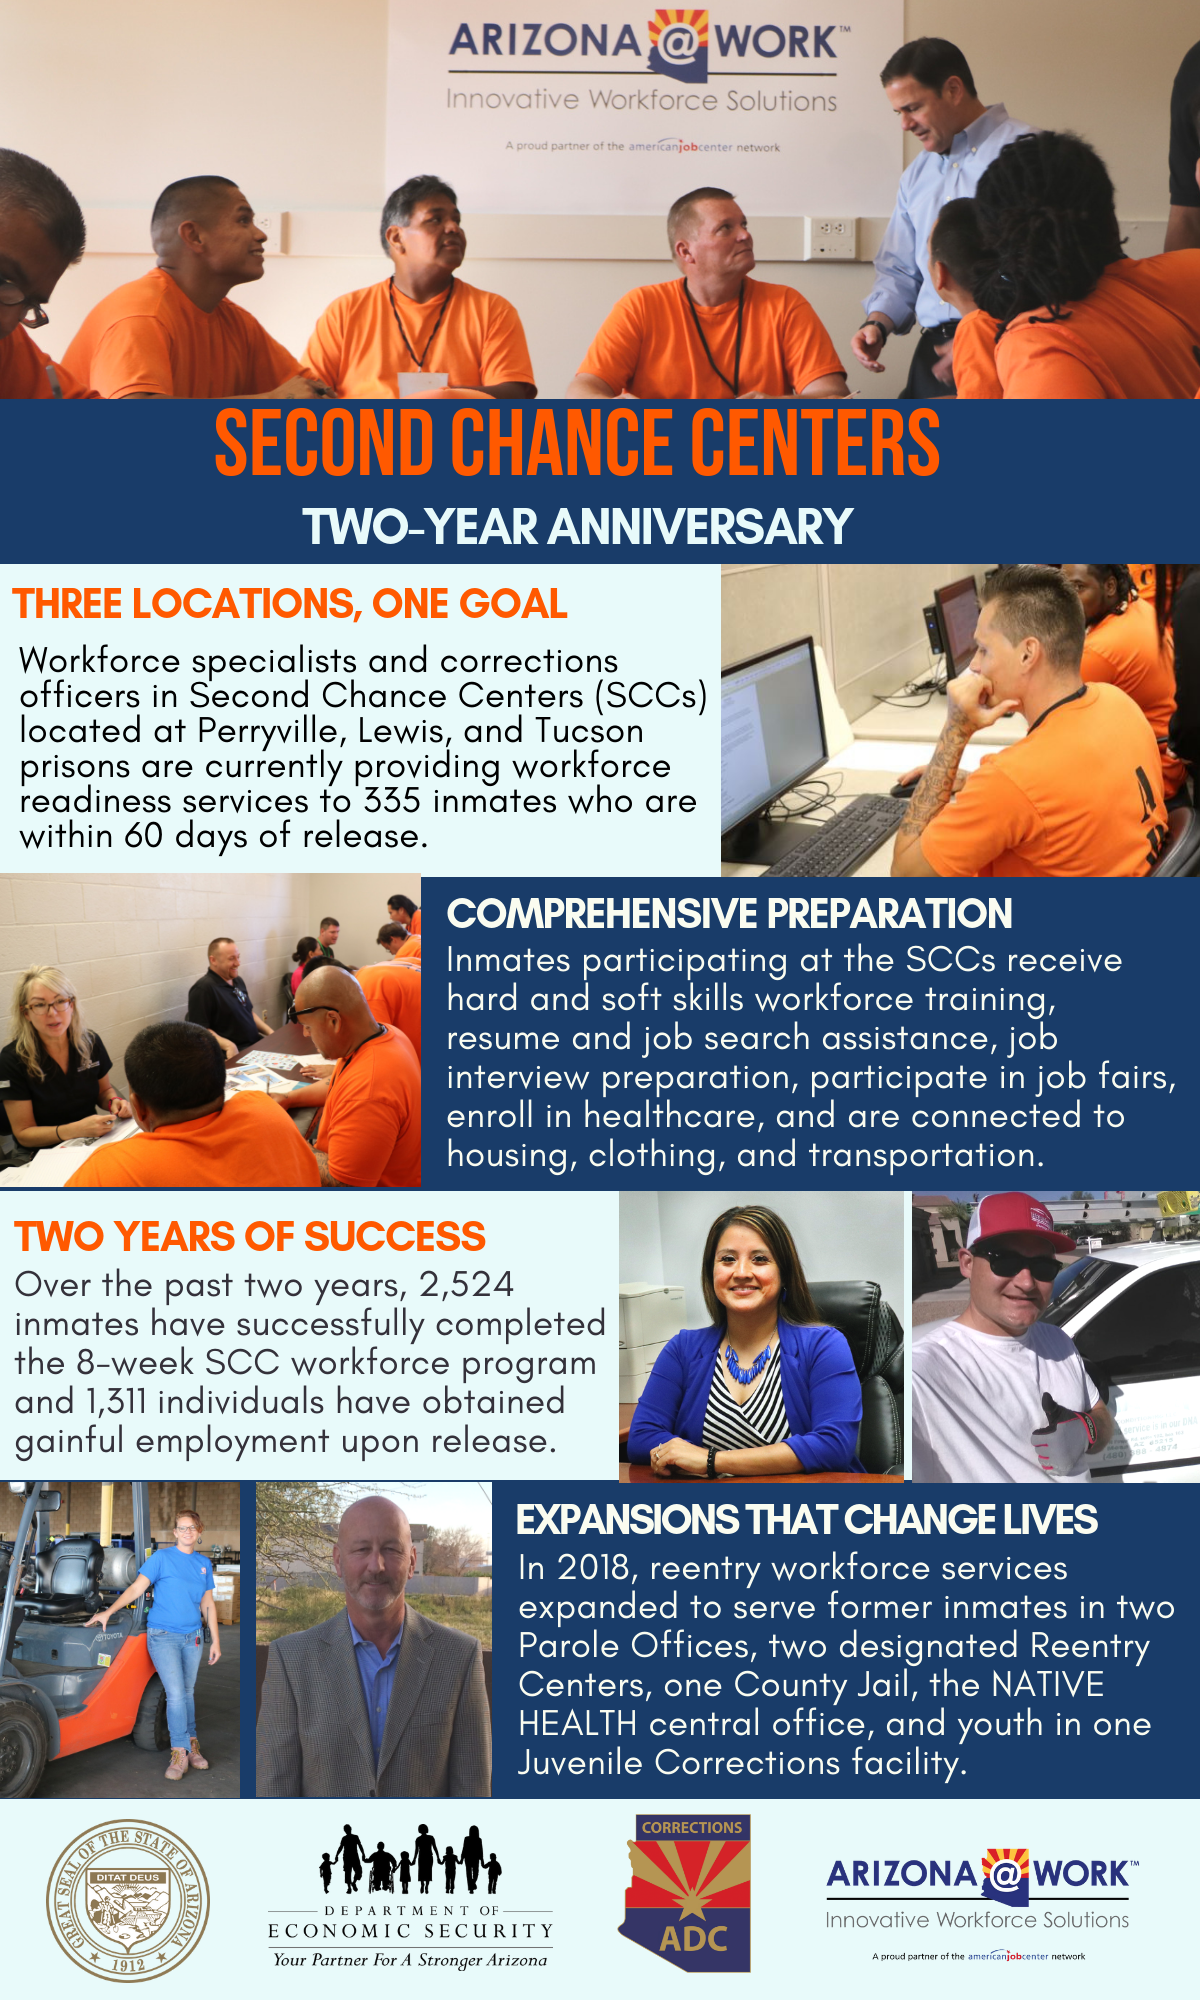 Information about Second Chance Centers